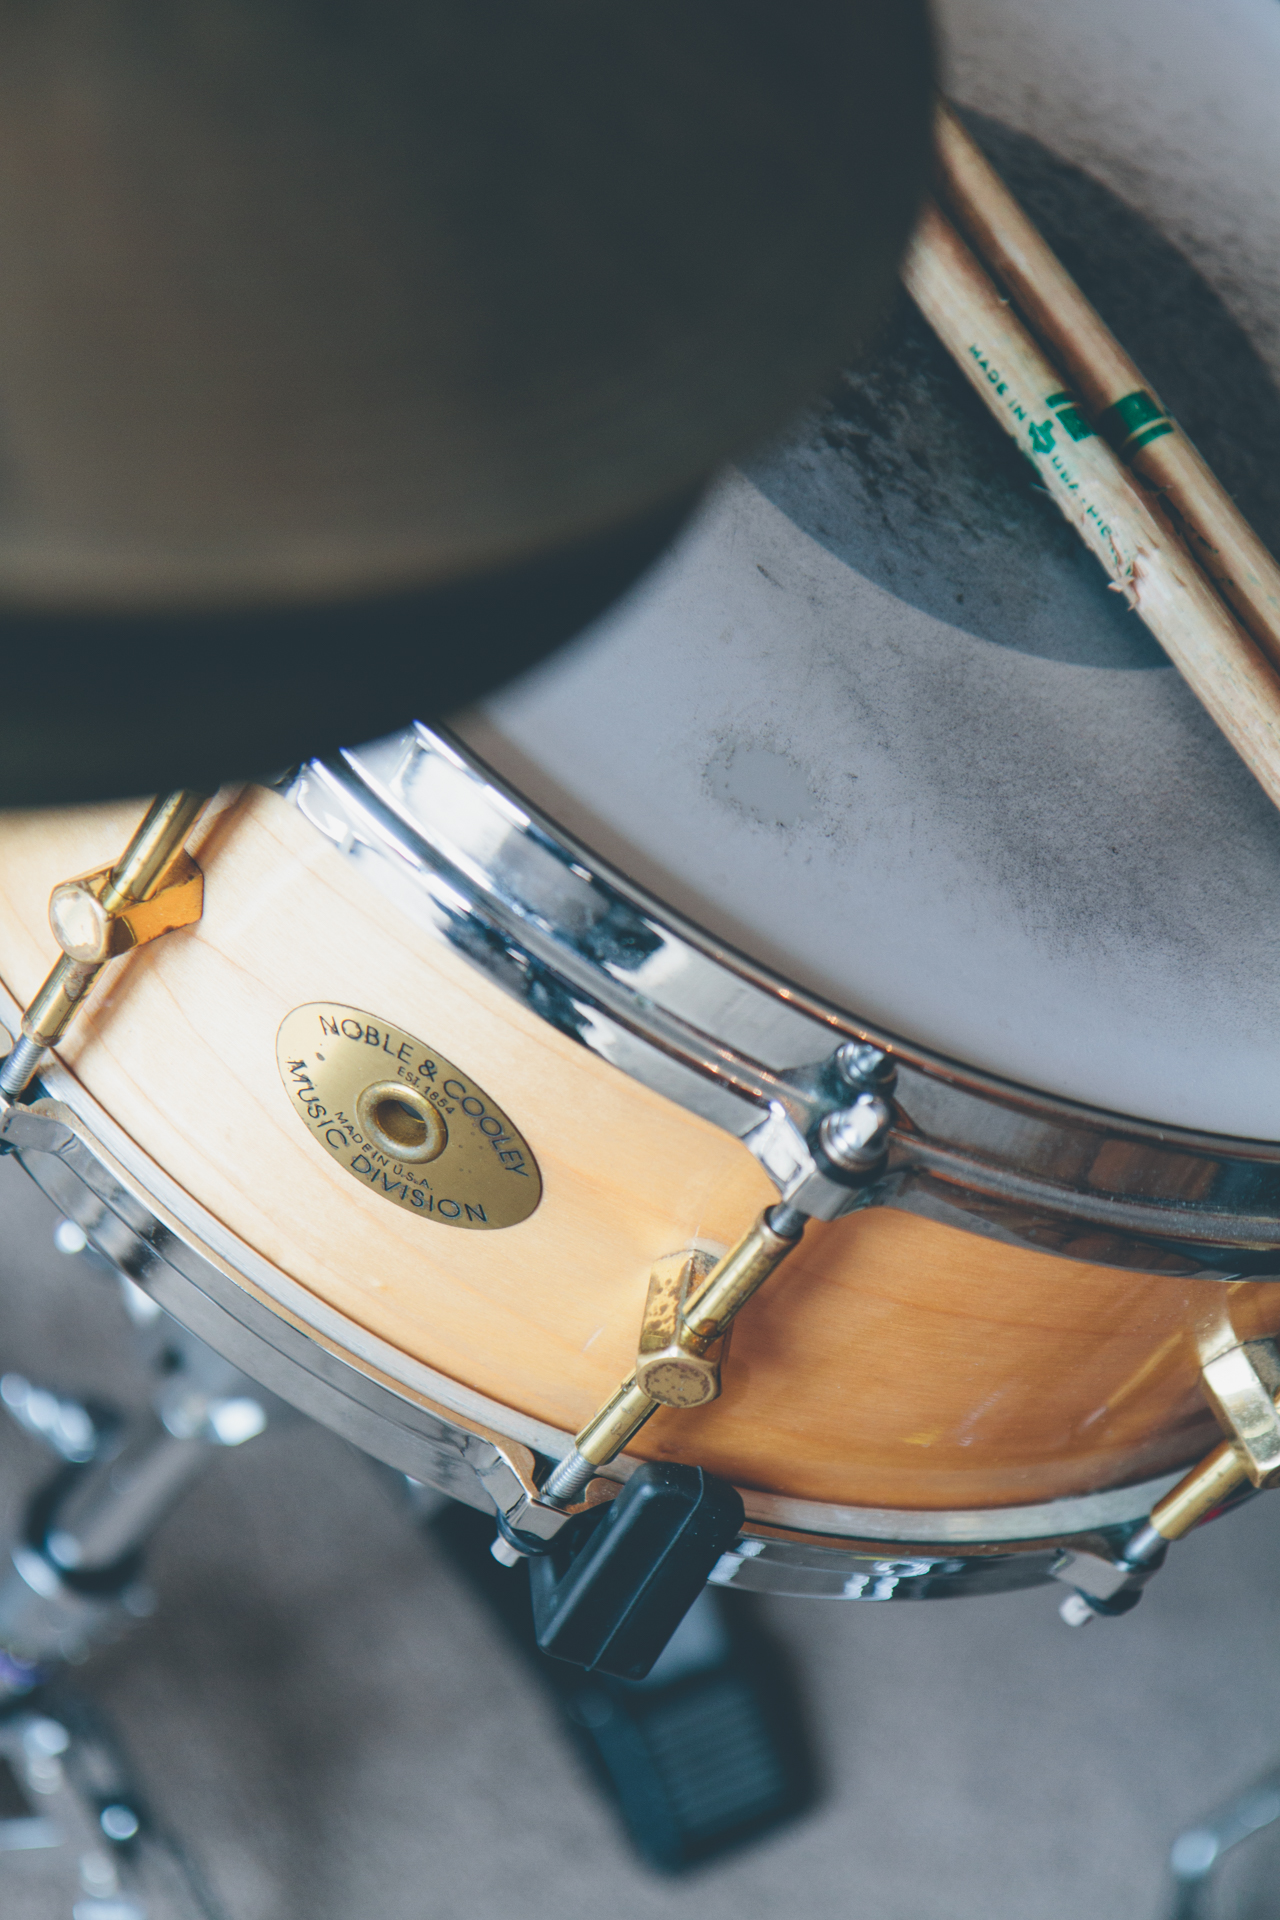 NOBLE & COOLEY SNARE